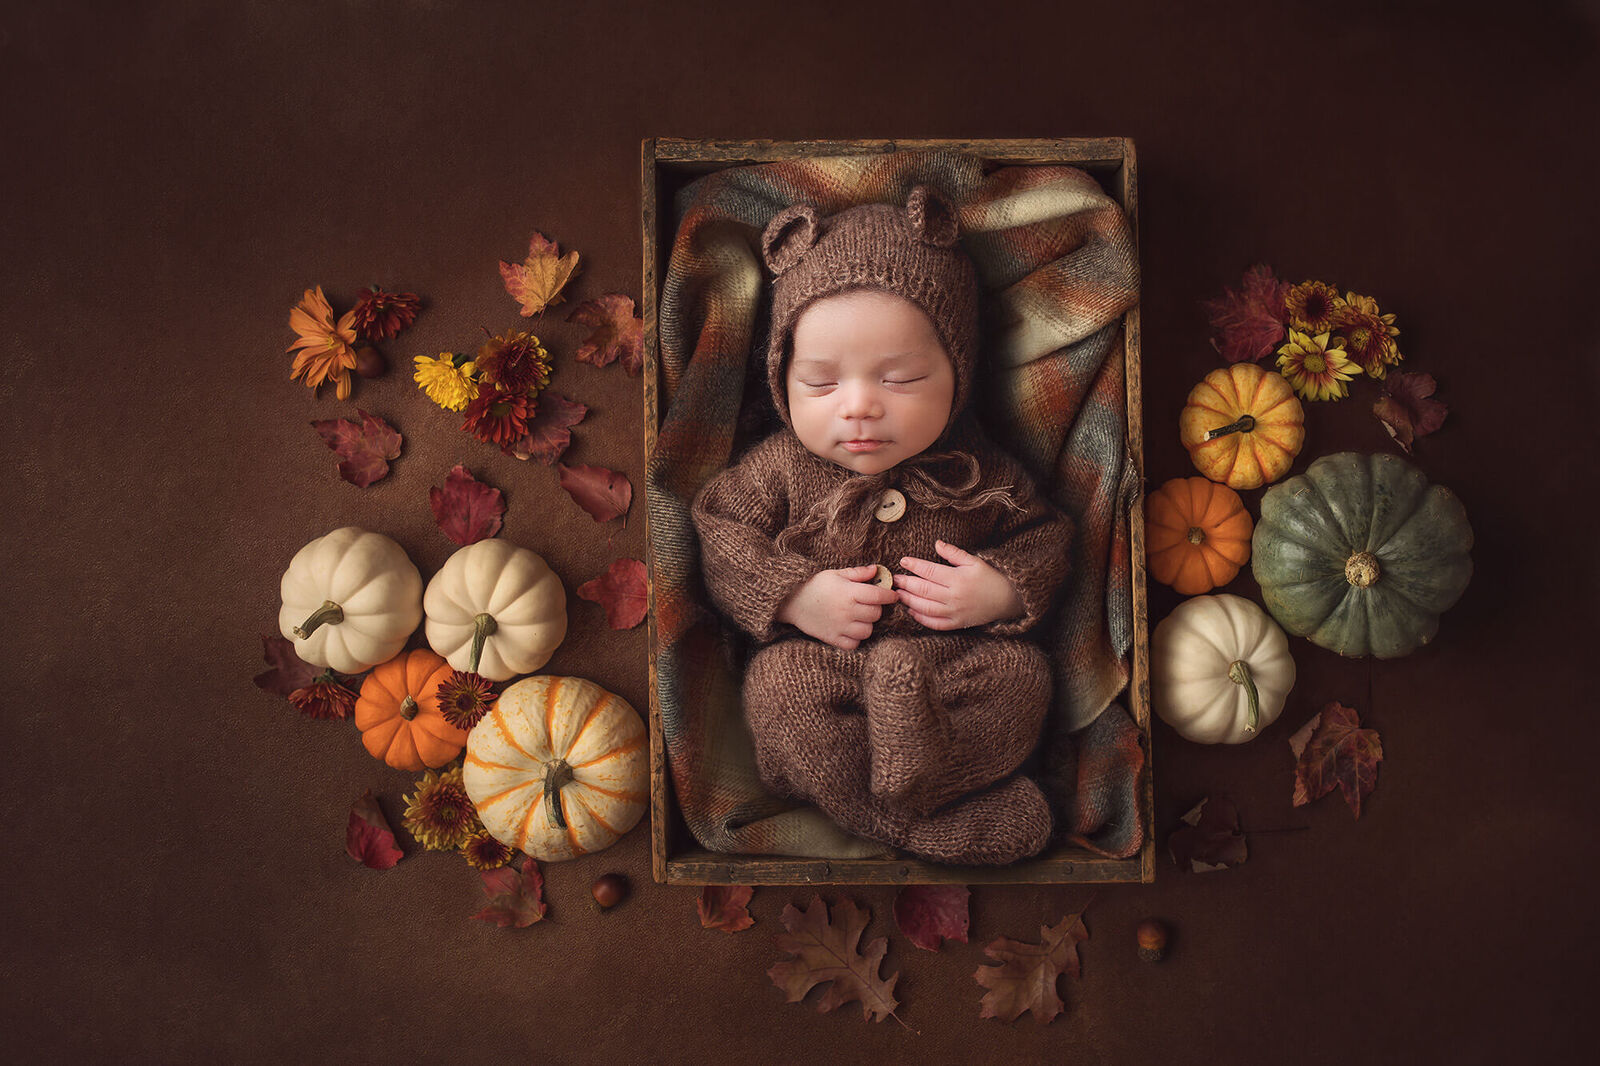 Newborn baby boy wearing a bear romper and surrounded by pumpkins for fall